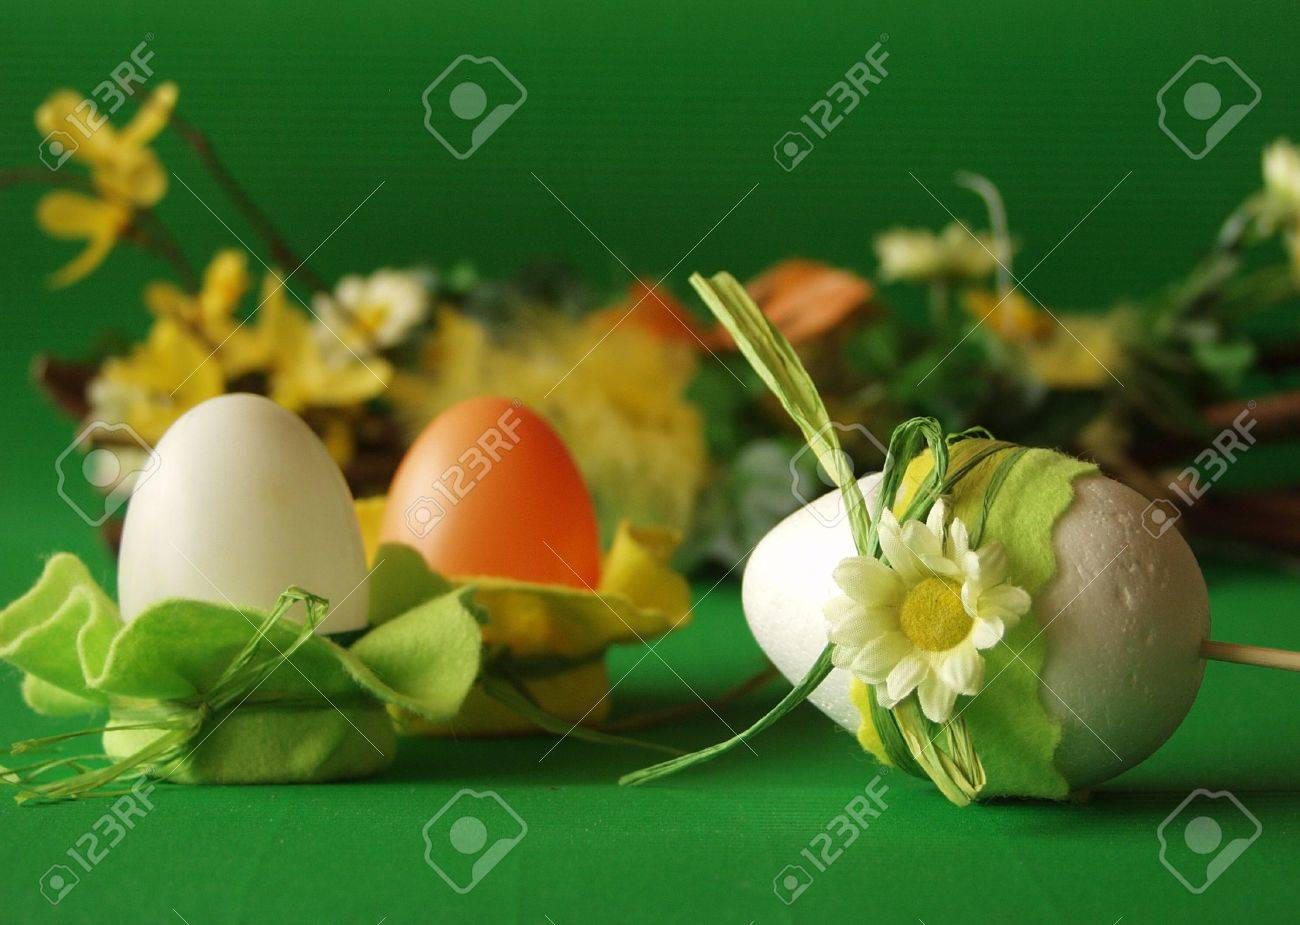 Easter eggs, flower decoration, green background Stock Photo - 370217